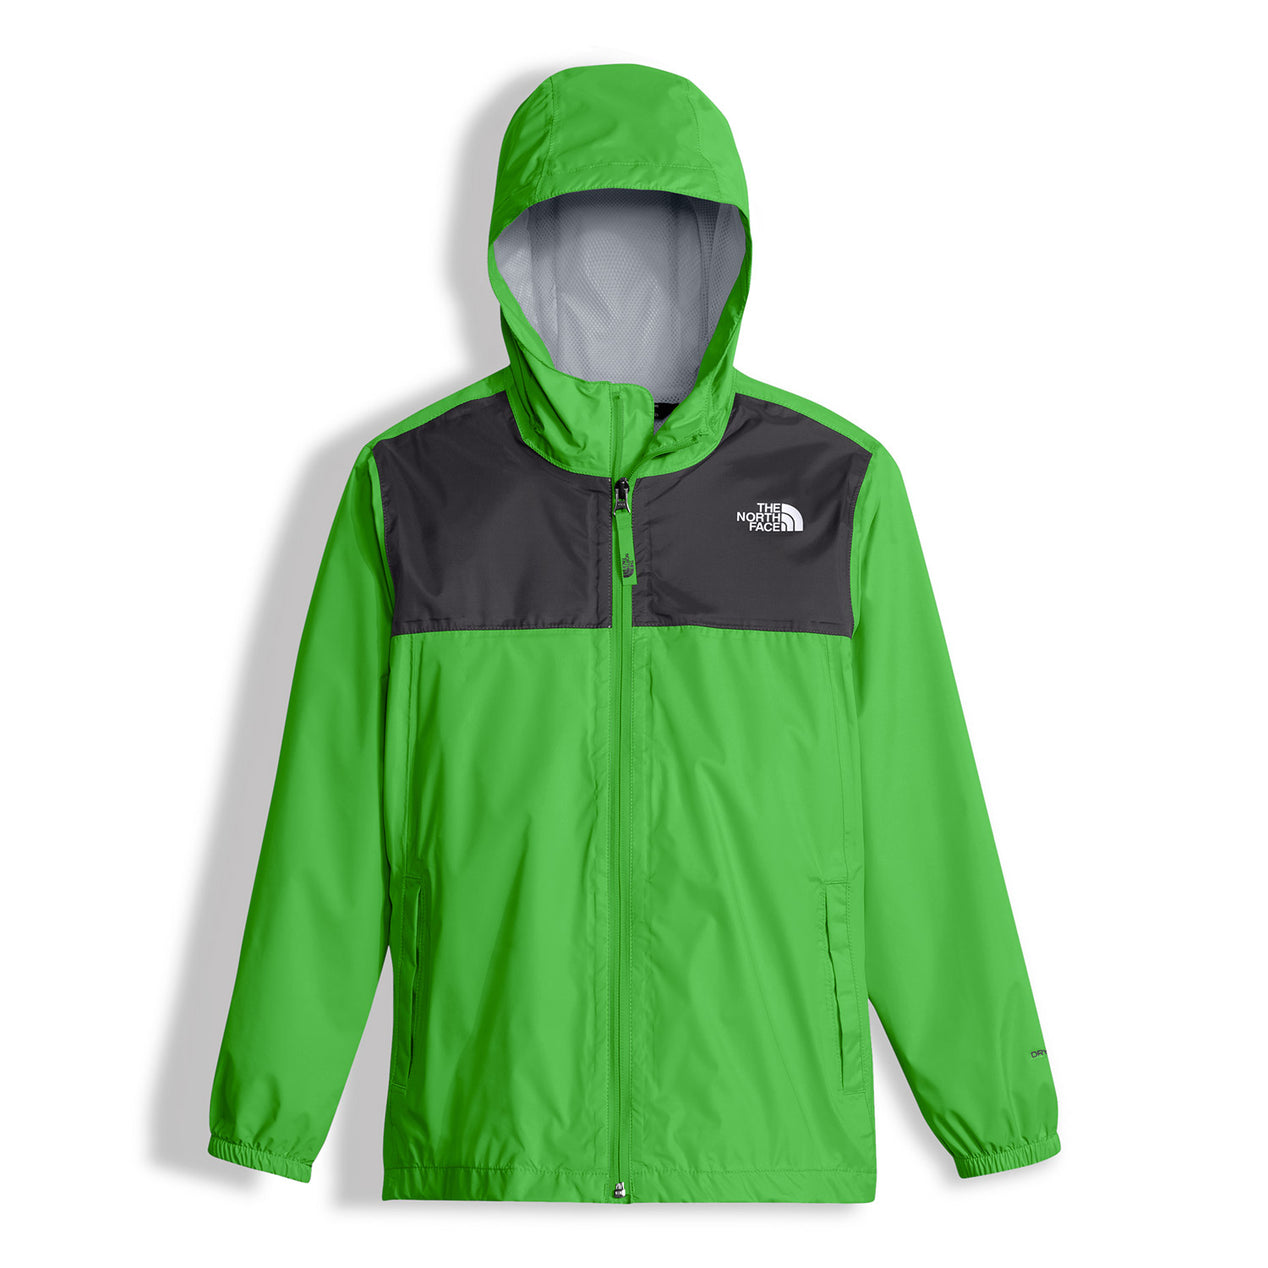 8a7e7c55d709 The North Face Boy s Zipline Rain Jacket Past Season